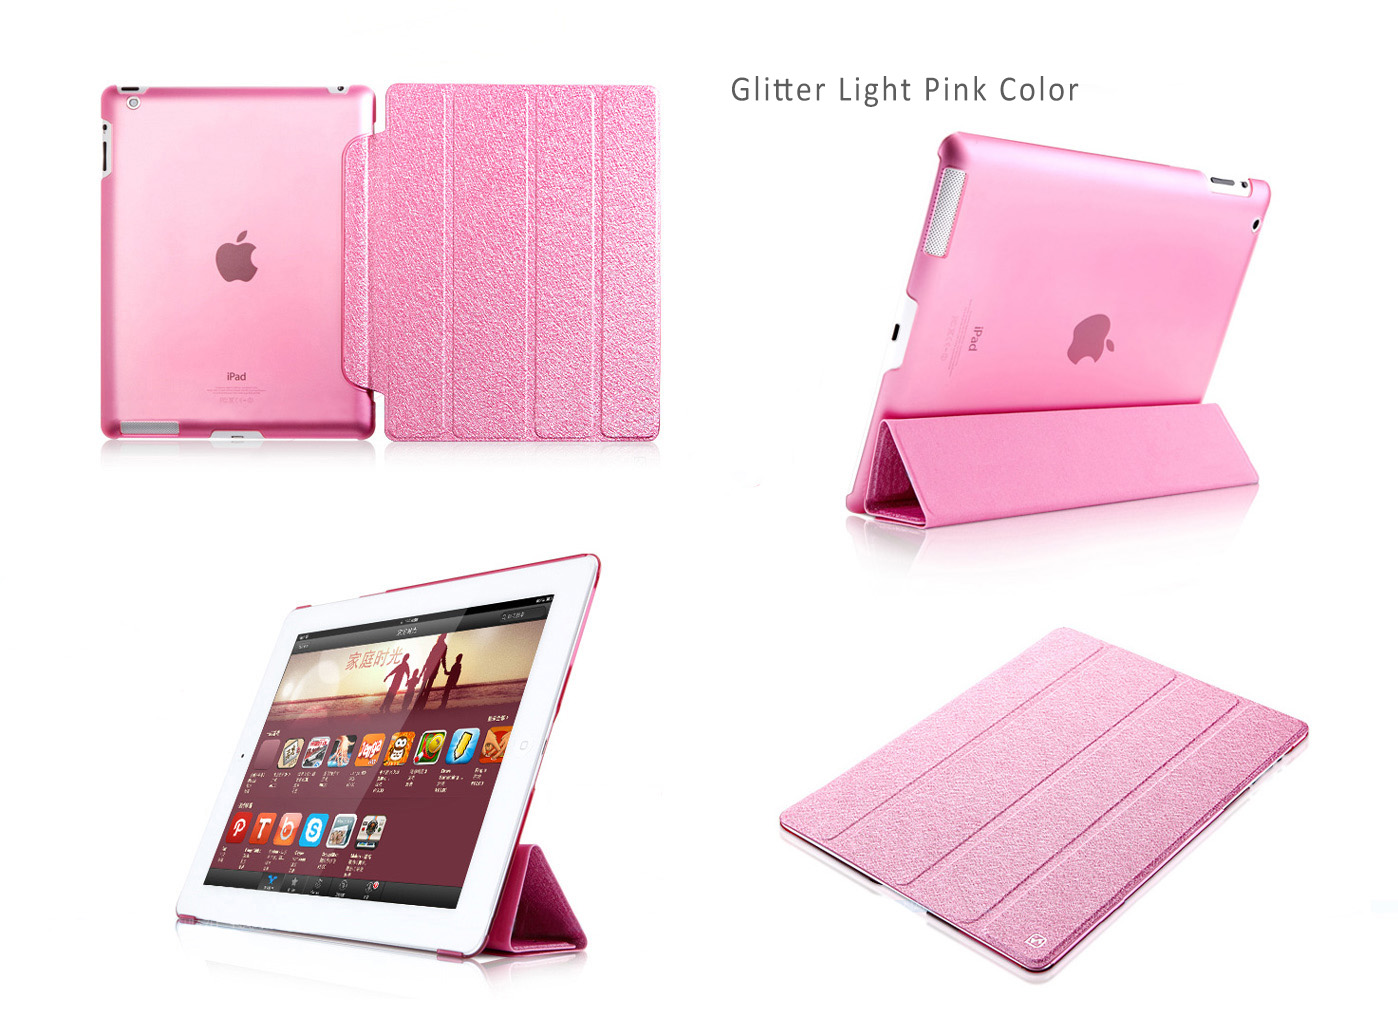 HOCO Glitter Covers / Cases / Sleeve Bags  for iPad Air - Auto Sleep / Awake Feature, Imported PU and PC ECO Friendly Material